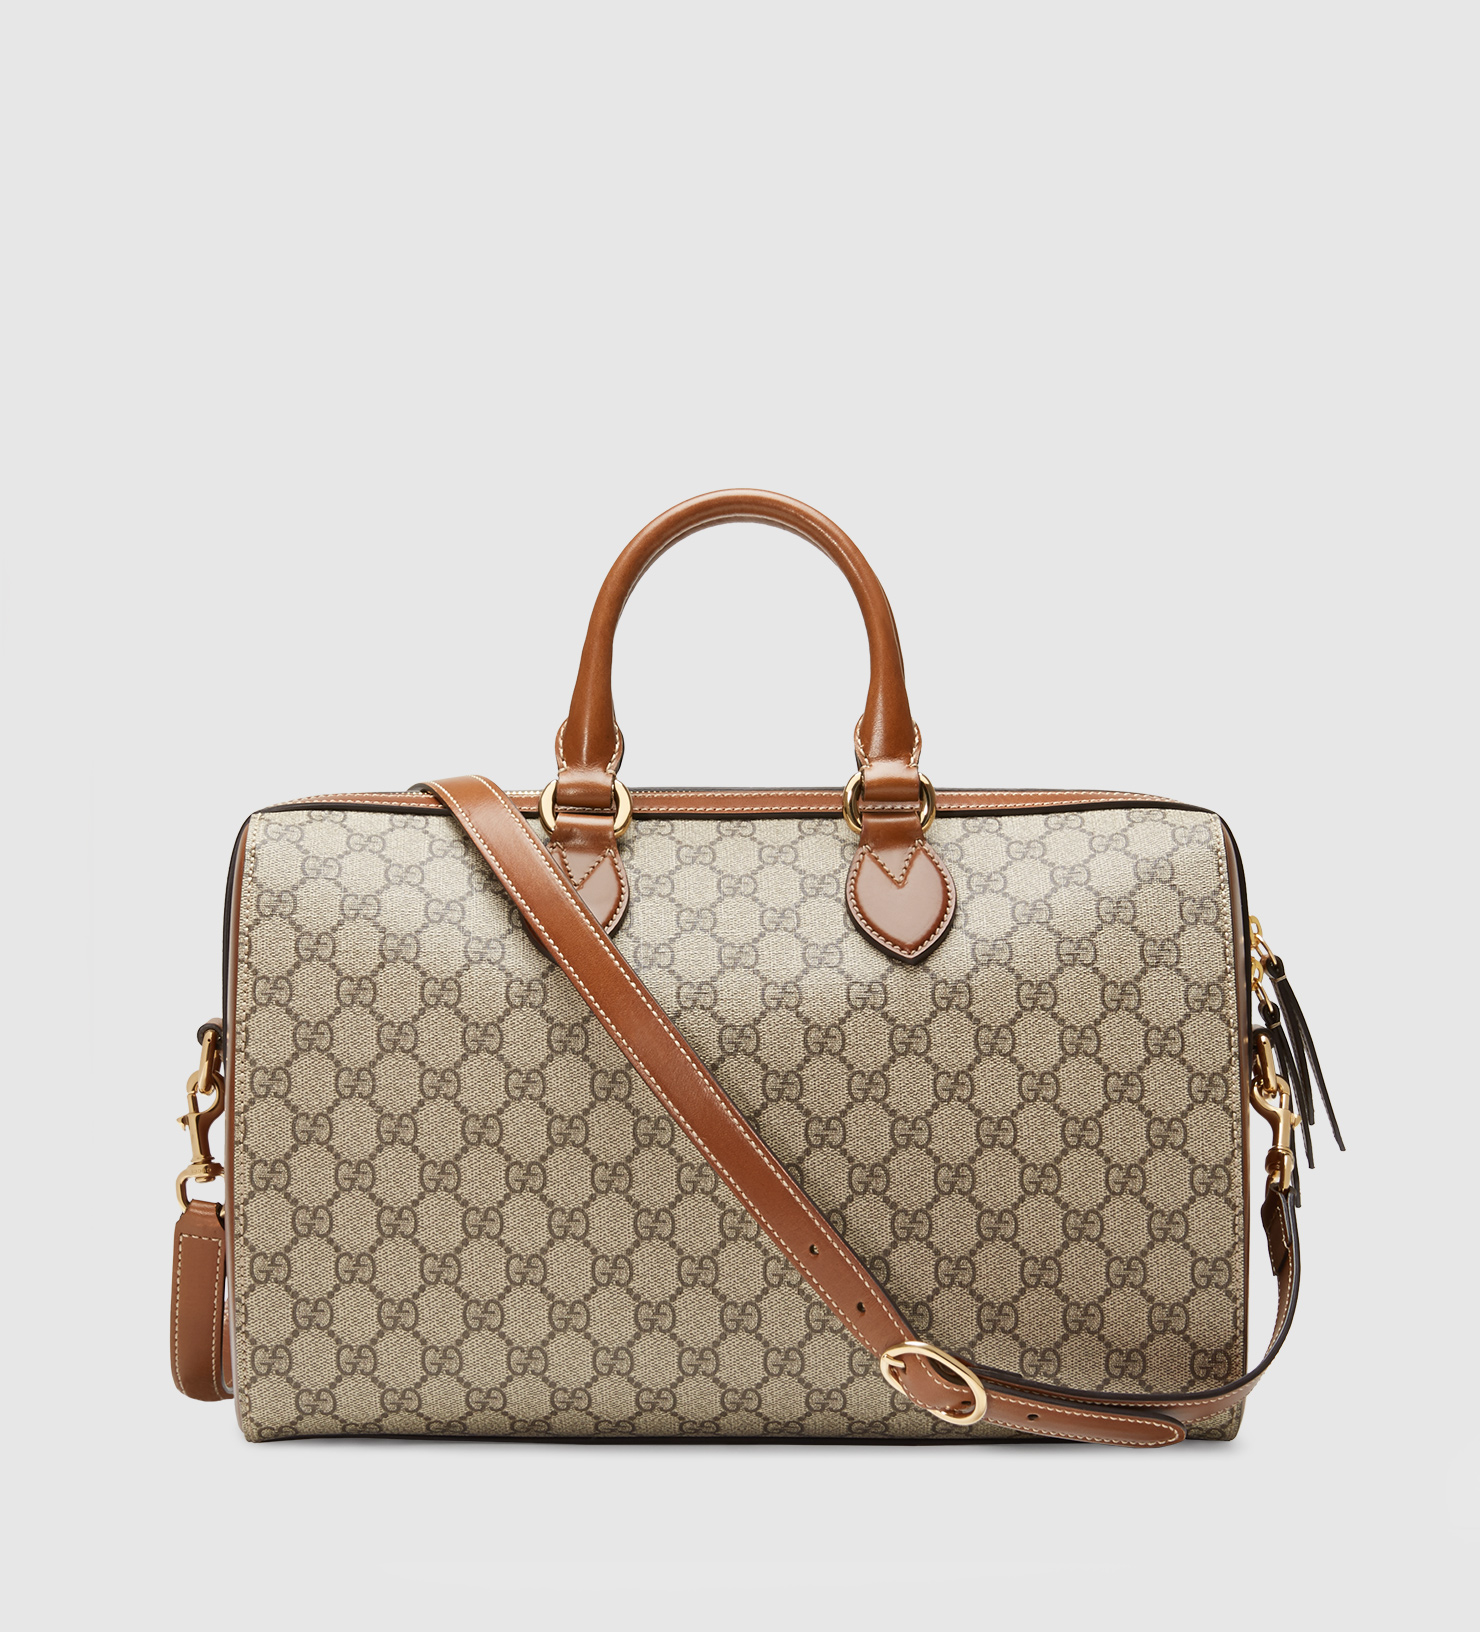 3233d3afaf79 Gucci Gg Supreme Top Handle Bag in Gray - Lyst